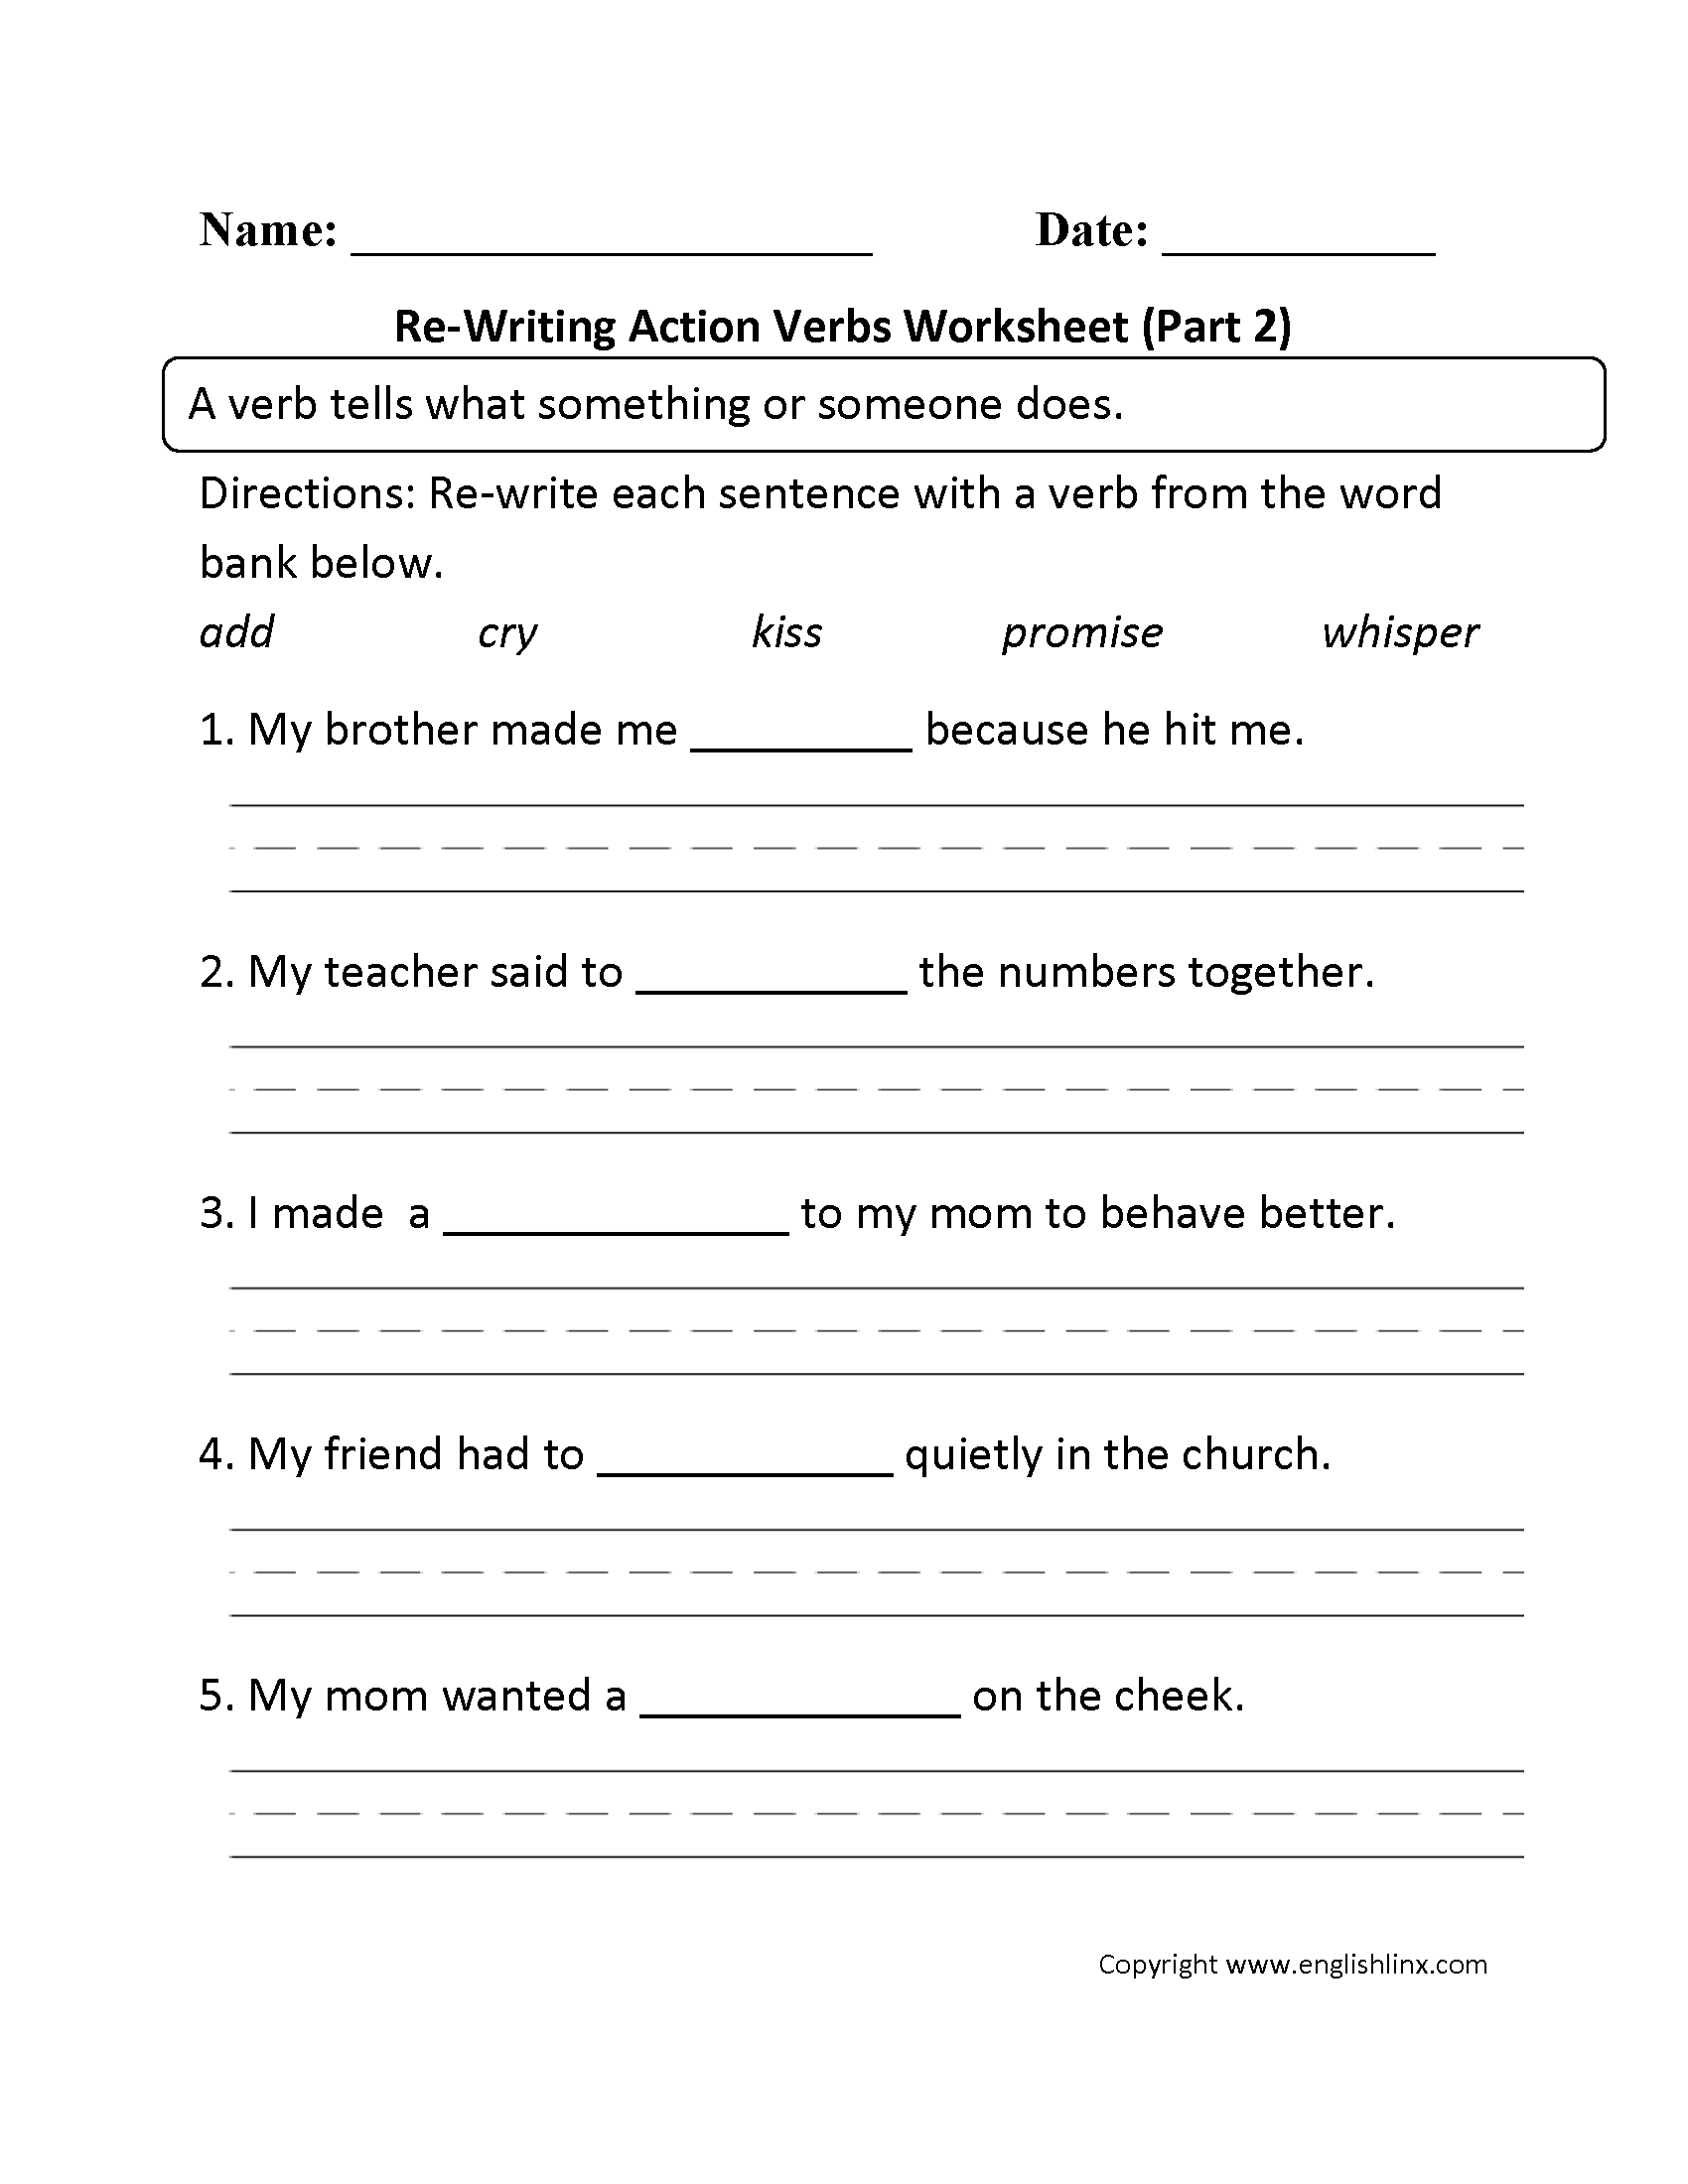 Worksheet Verbs Worksheet For Grade 2 verbs worksheets action worksheet part 2